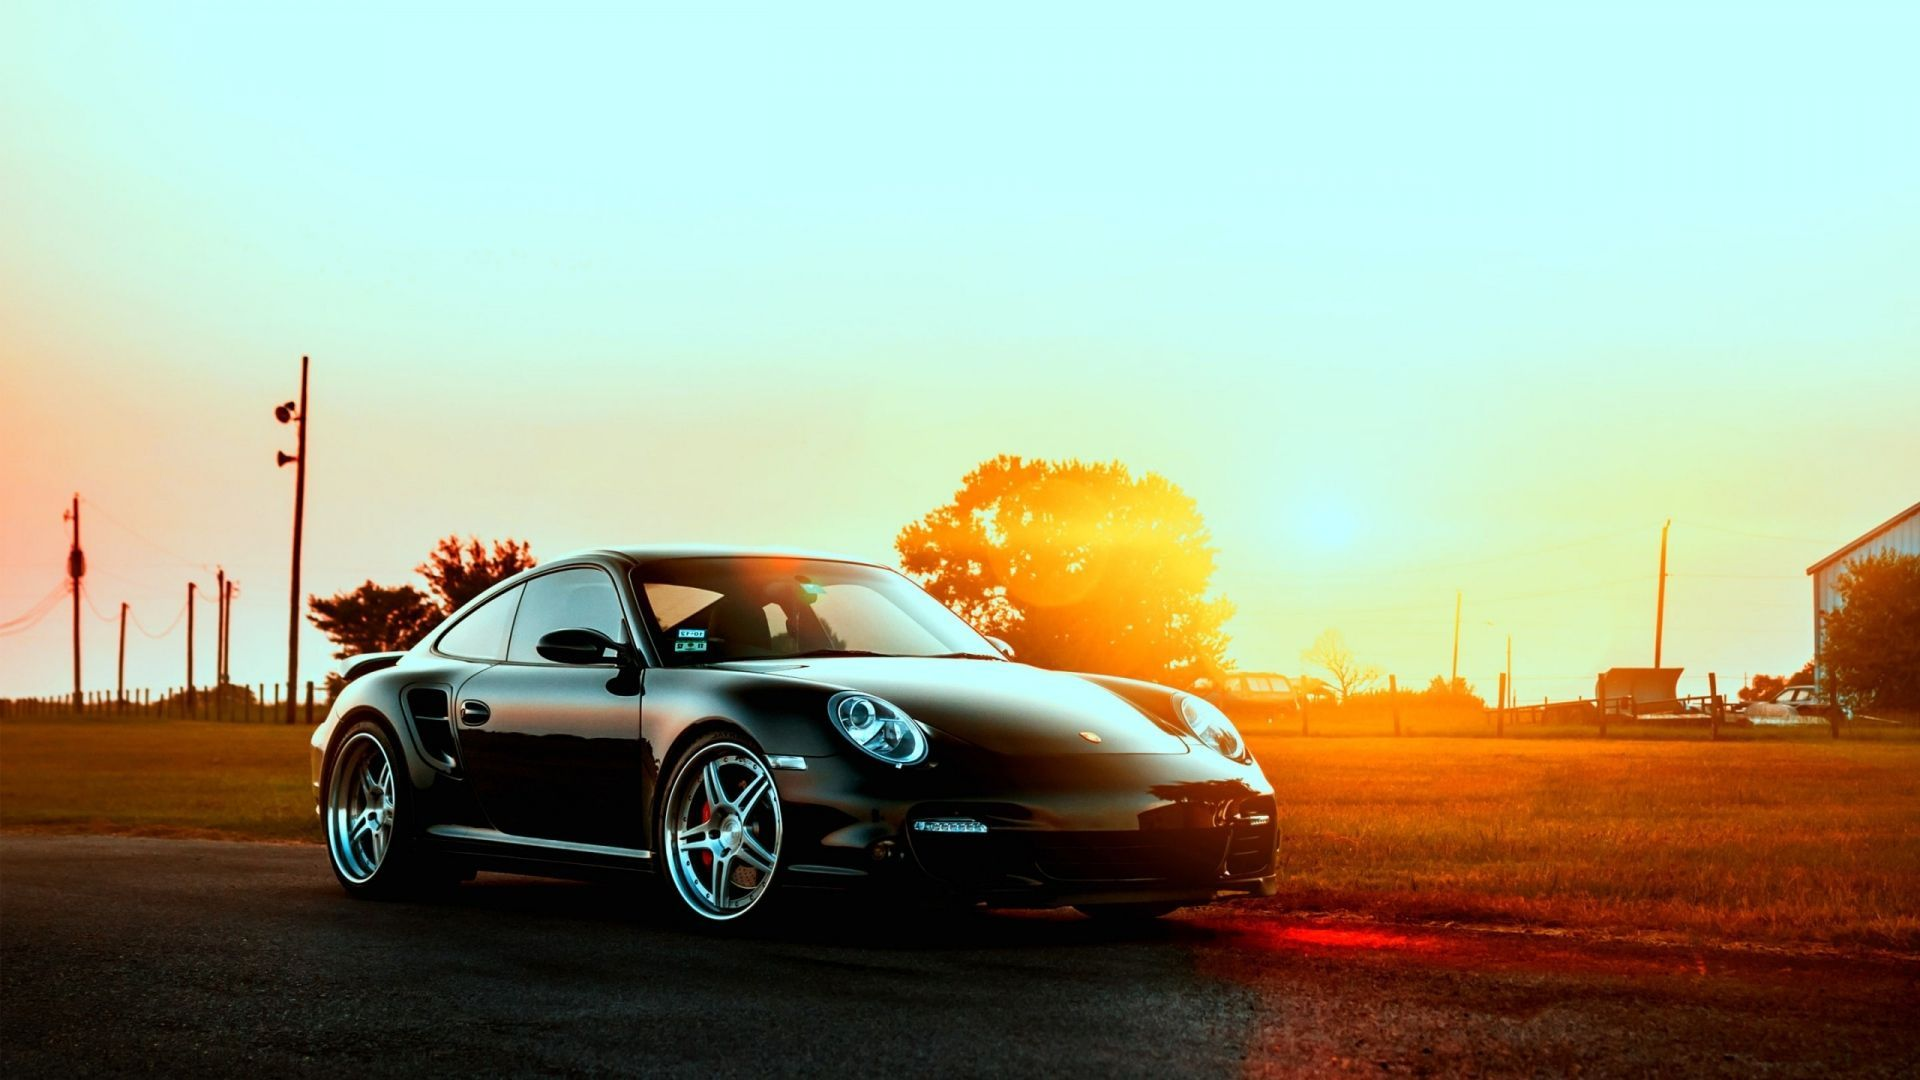 Red hot images of the porsche carrera gt, ford gt, and ferrari enzo, downloadable for your desktop. Full Hd Car Background Images Hd 1080p Free Download Picture Idokeren